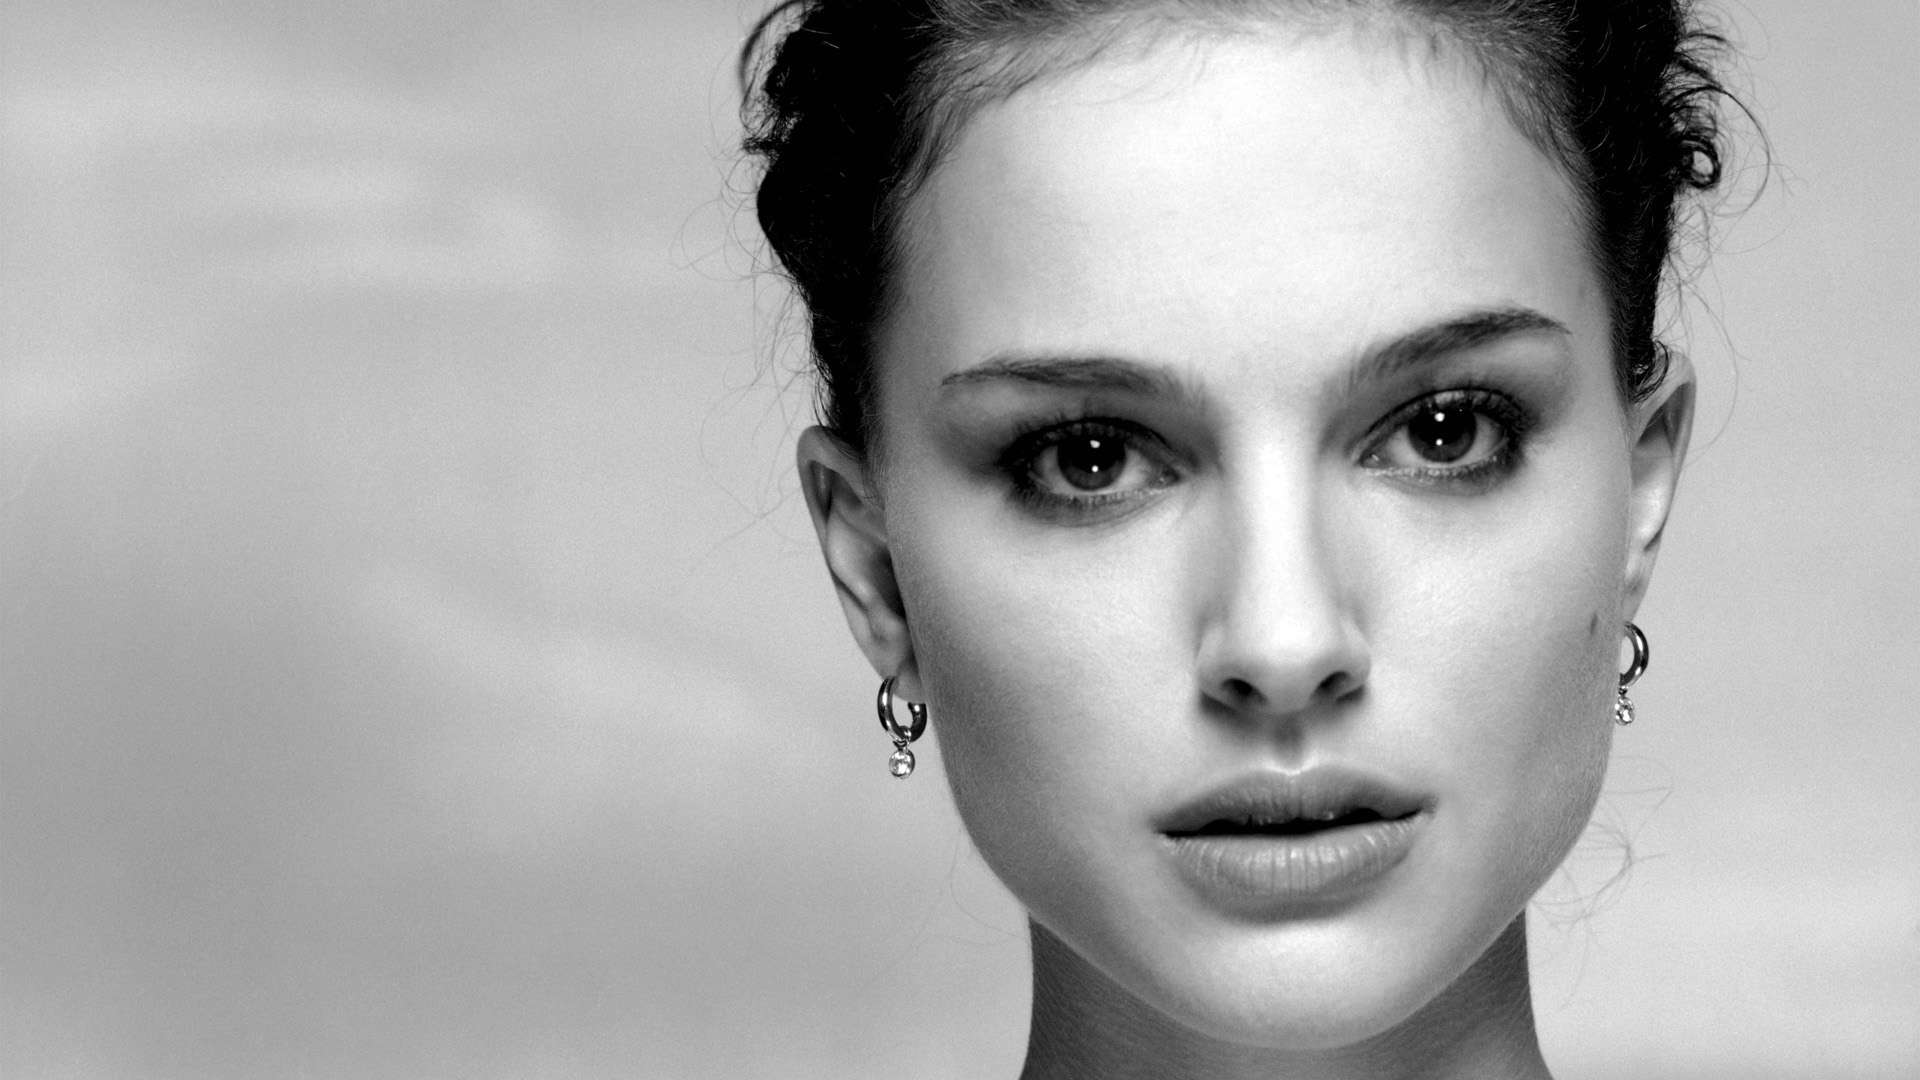 Natalie Portman Wallpapers HD Download 3188 Full HD Wallpaper ...